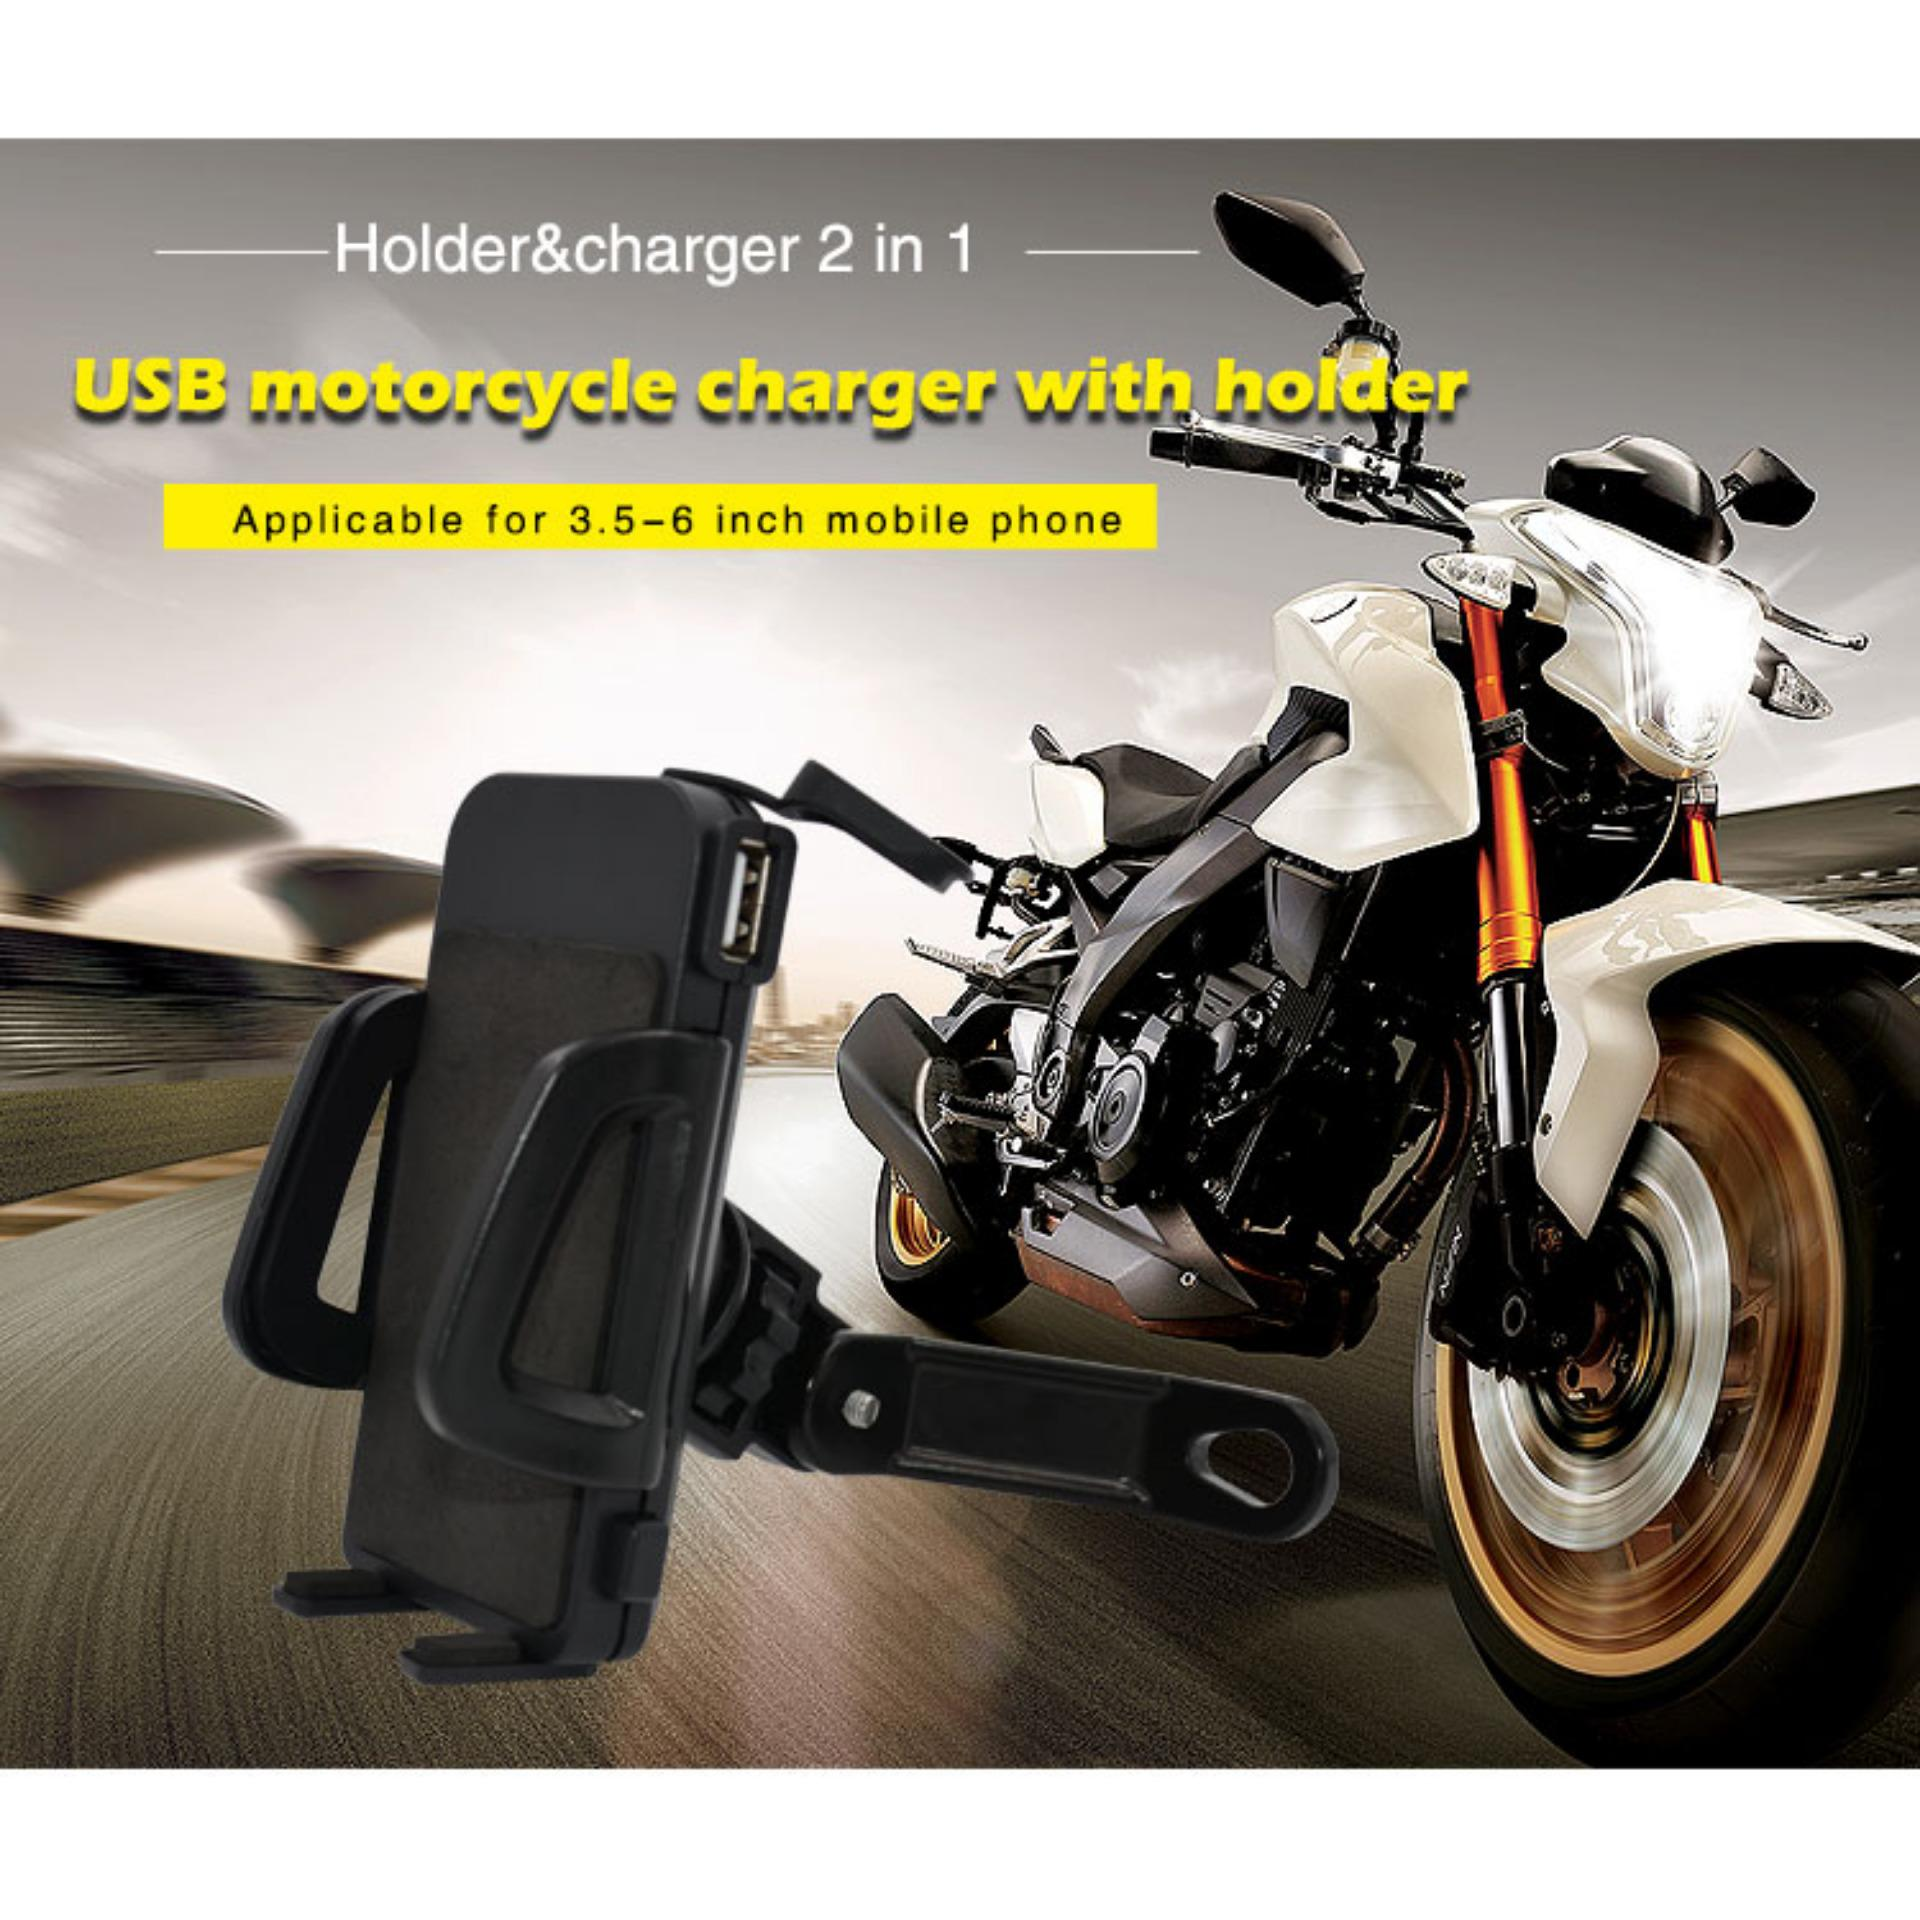 ... uNiQue Holder Motor With USB Charger Smartphone for Motorcycle - Spion Holder Motor Charger Aki Untuk ...